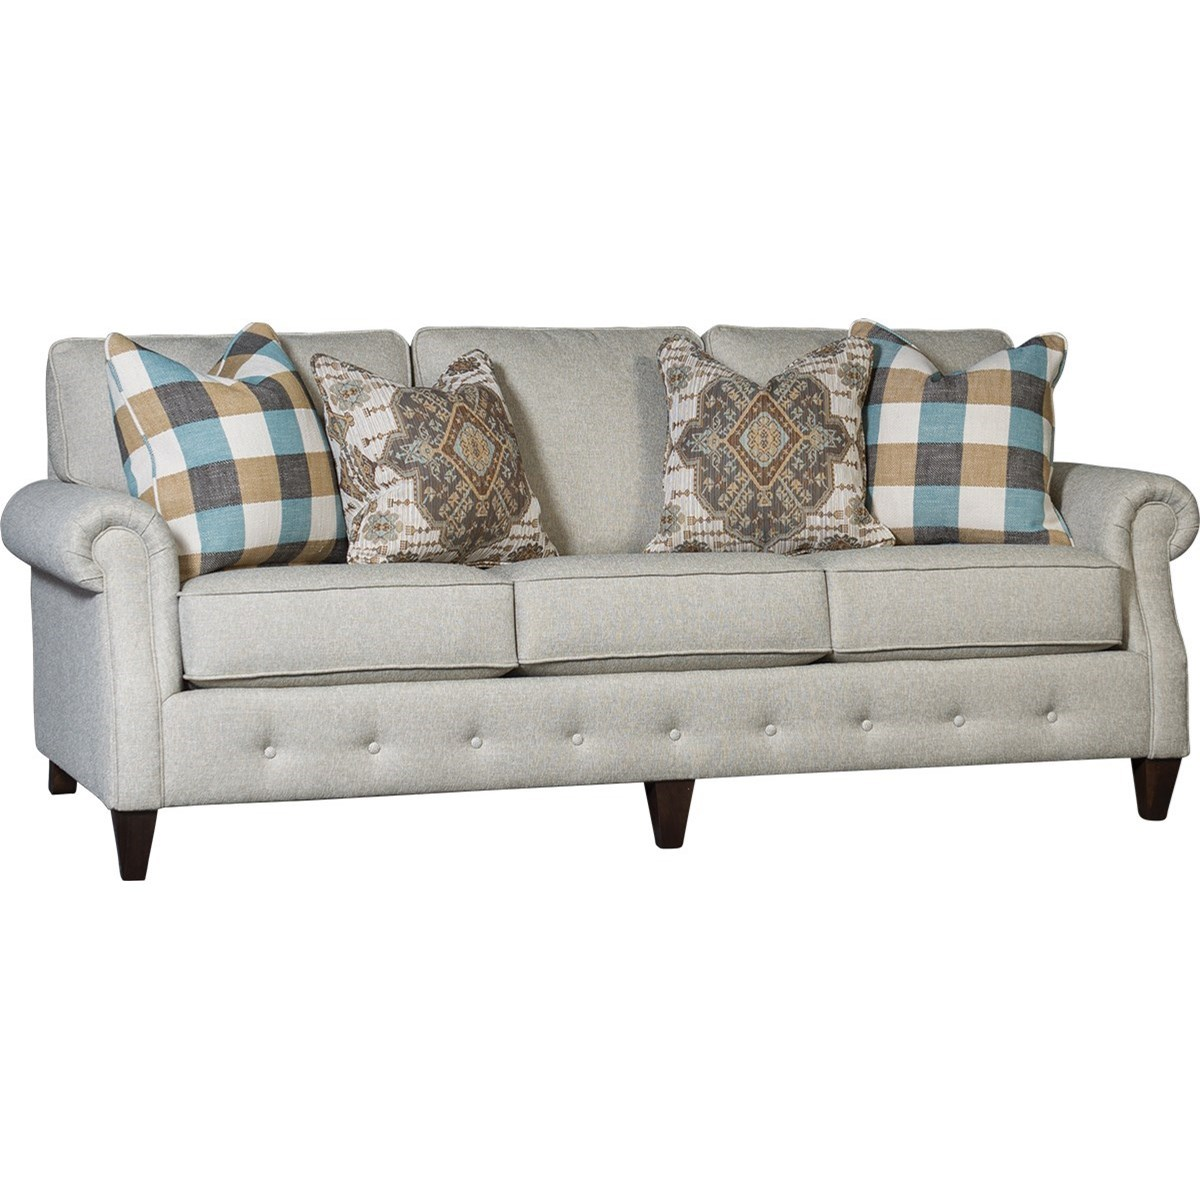 4040 Transitional Sofa by Mayo at Wilcox Furniture